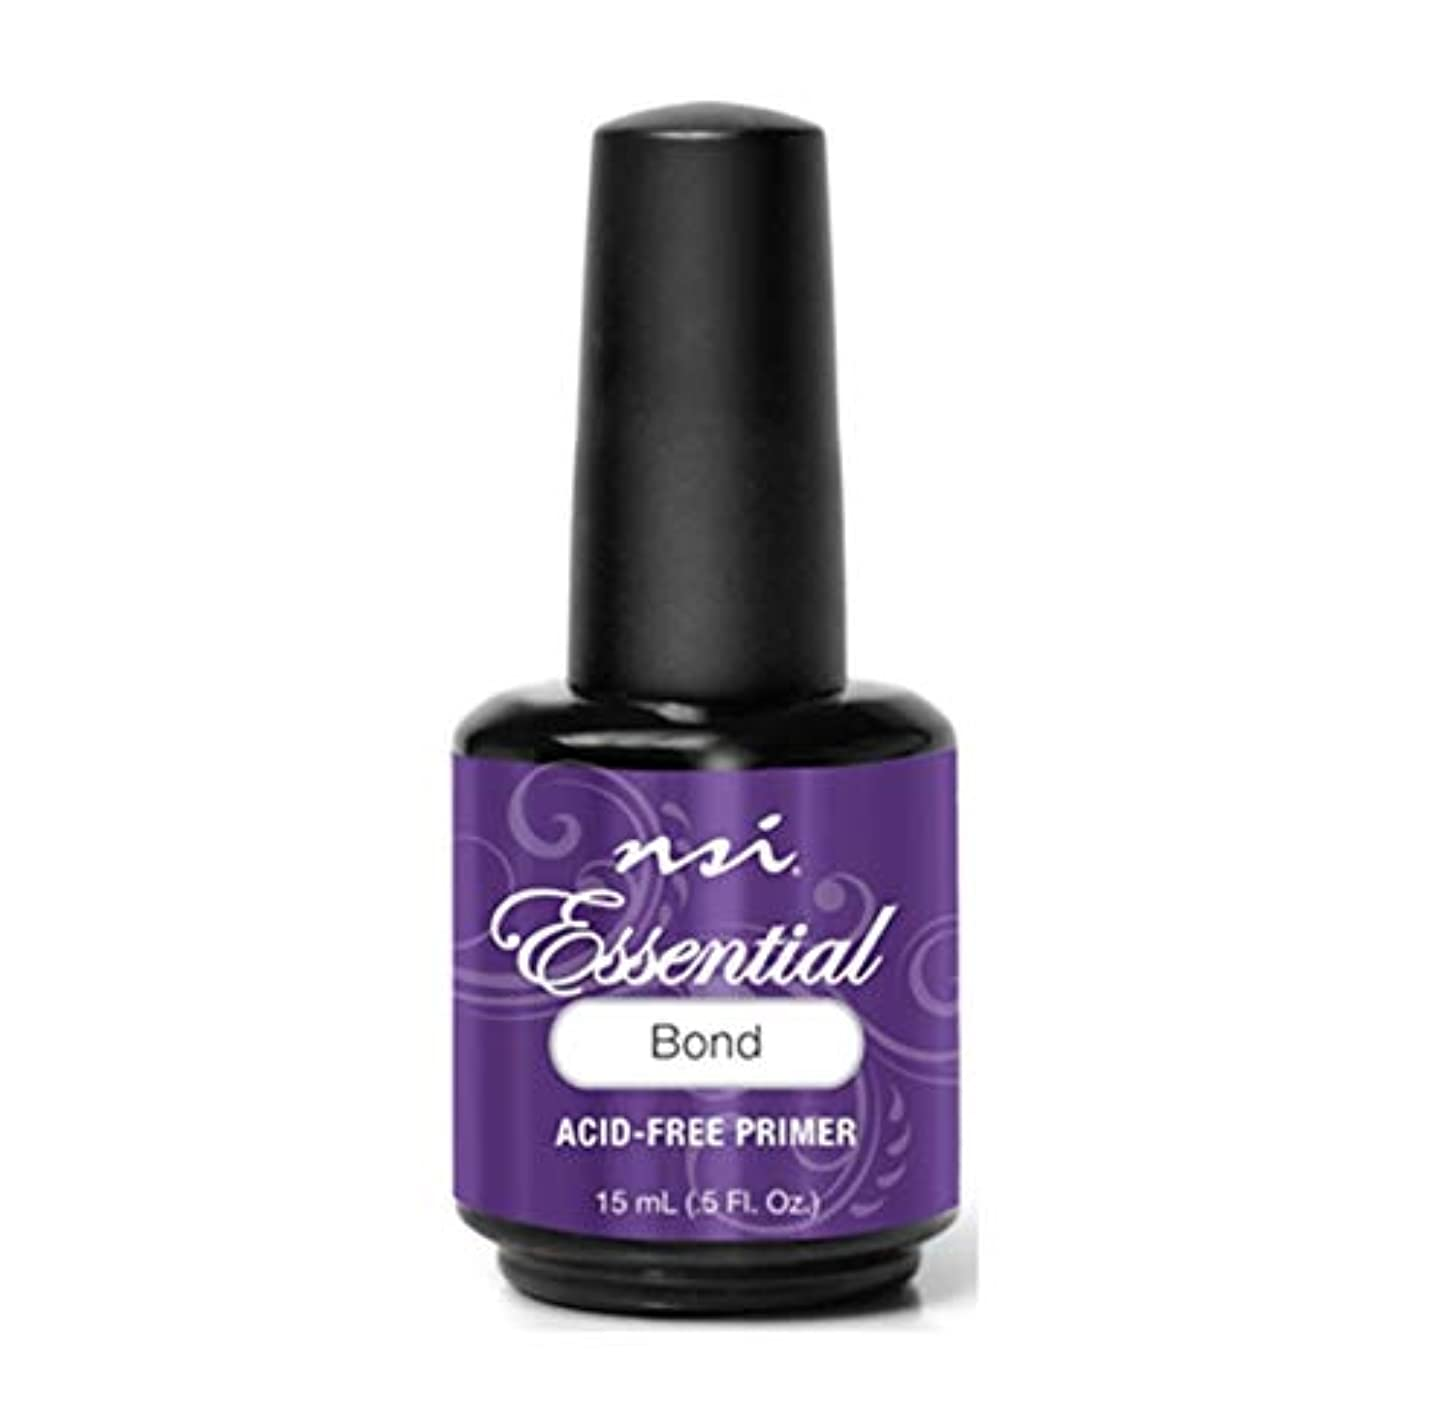 nsi - Essential - Bond - 15 mL / 0.5 oz